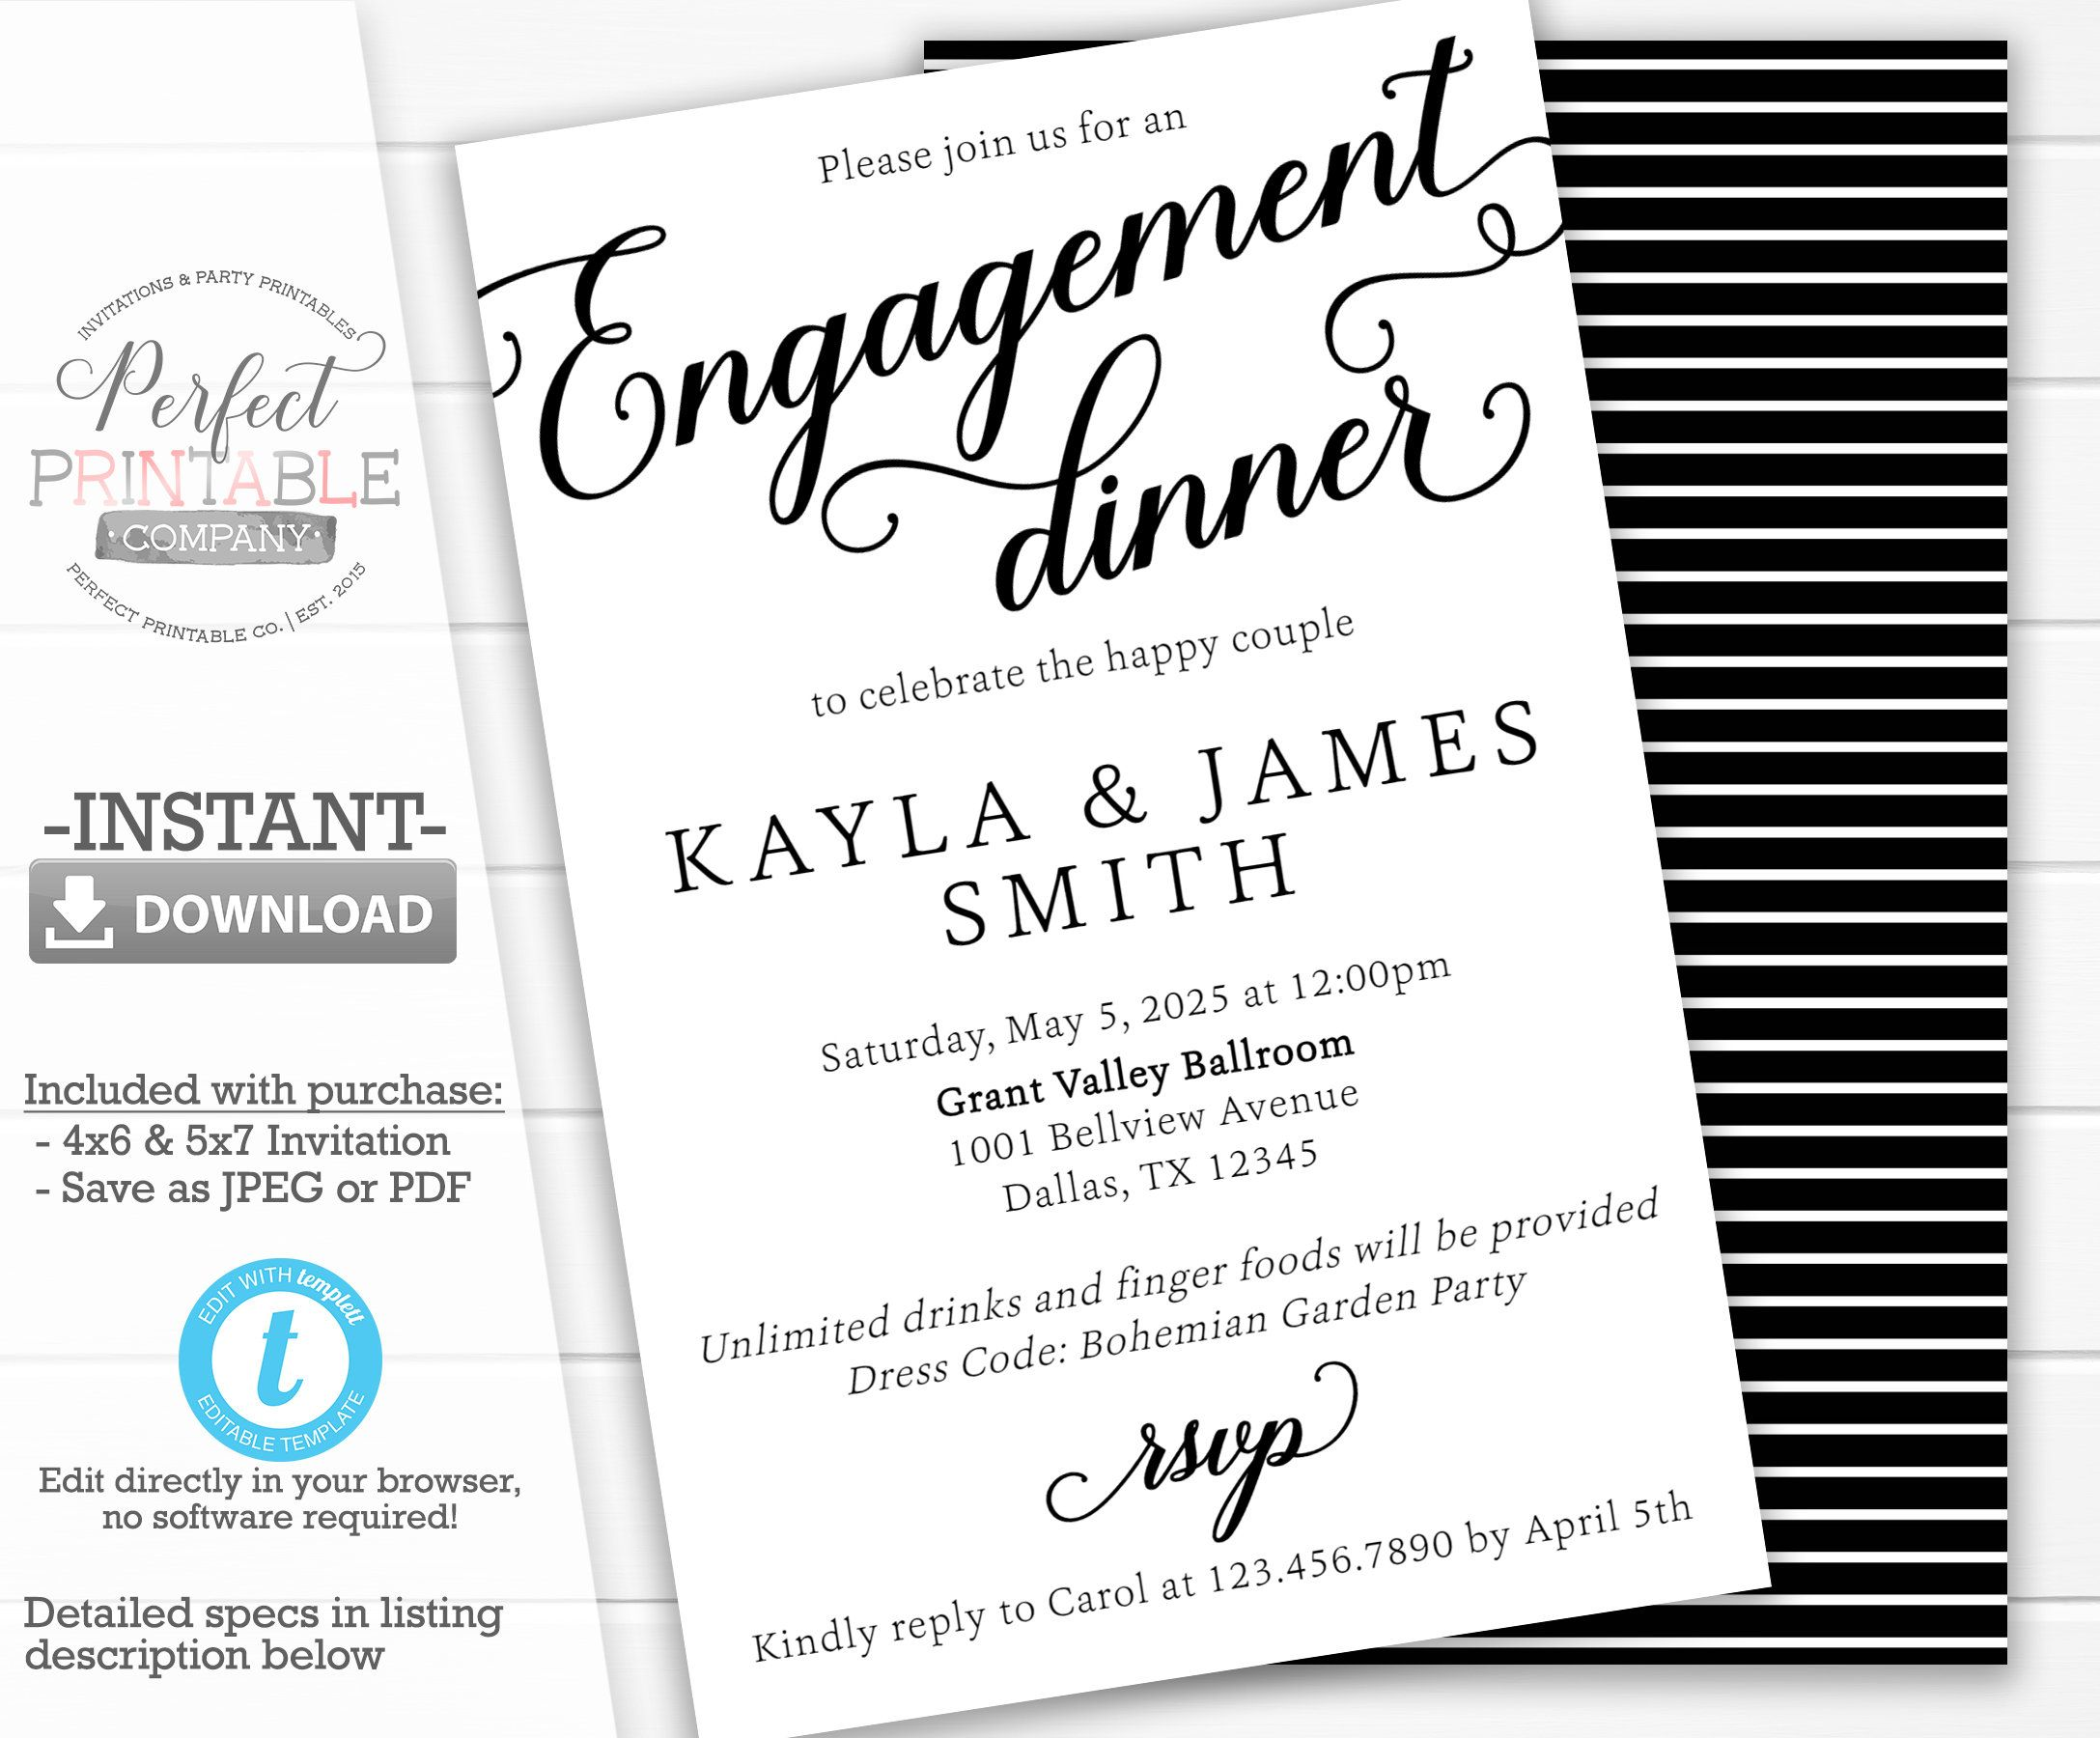 Engagement Dinner Invitation Engagement Party Invite Engagement A Engagement Announcement Cards Engagement Party Invitations Bachelorette Weekend Invitations